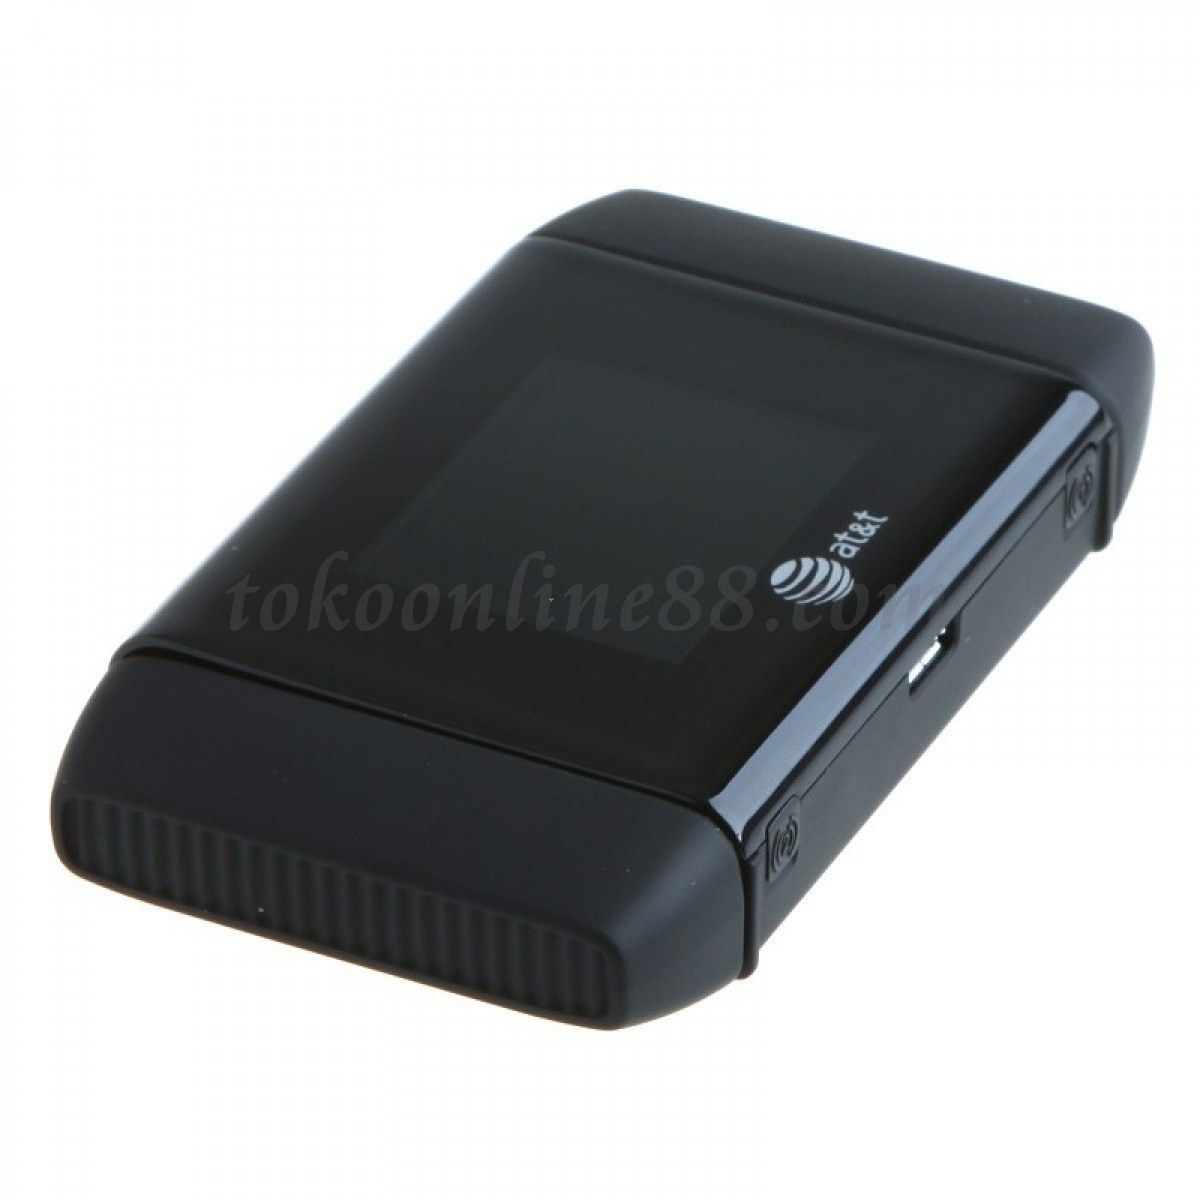 modem wifi portable